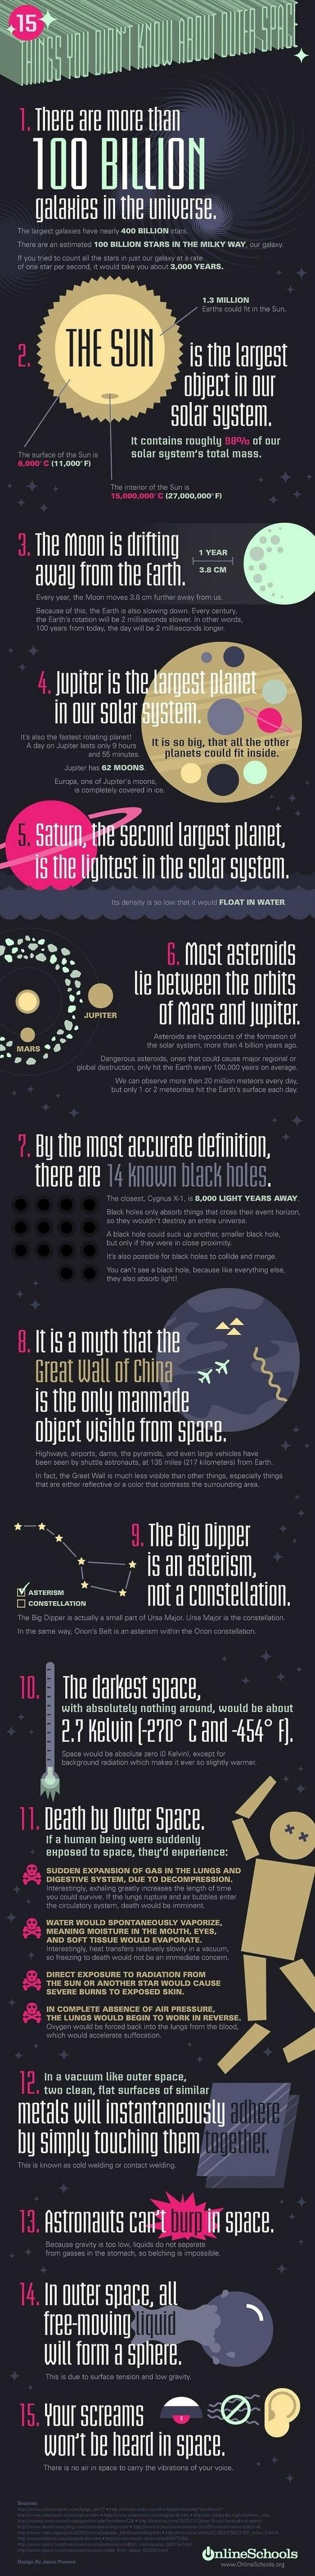 15 Things You Don't Know About Outer Space